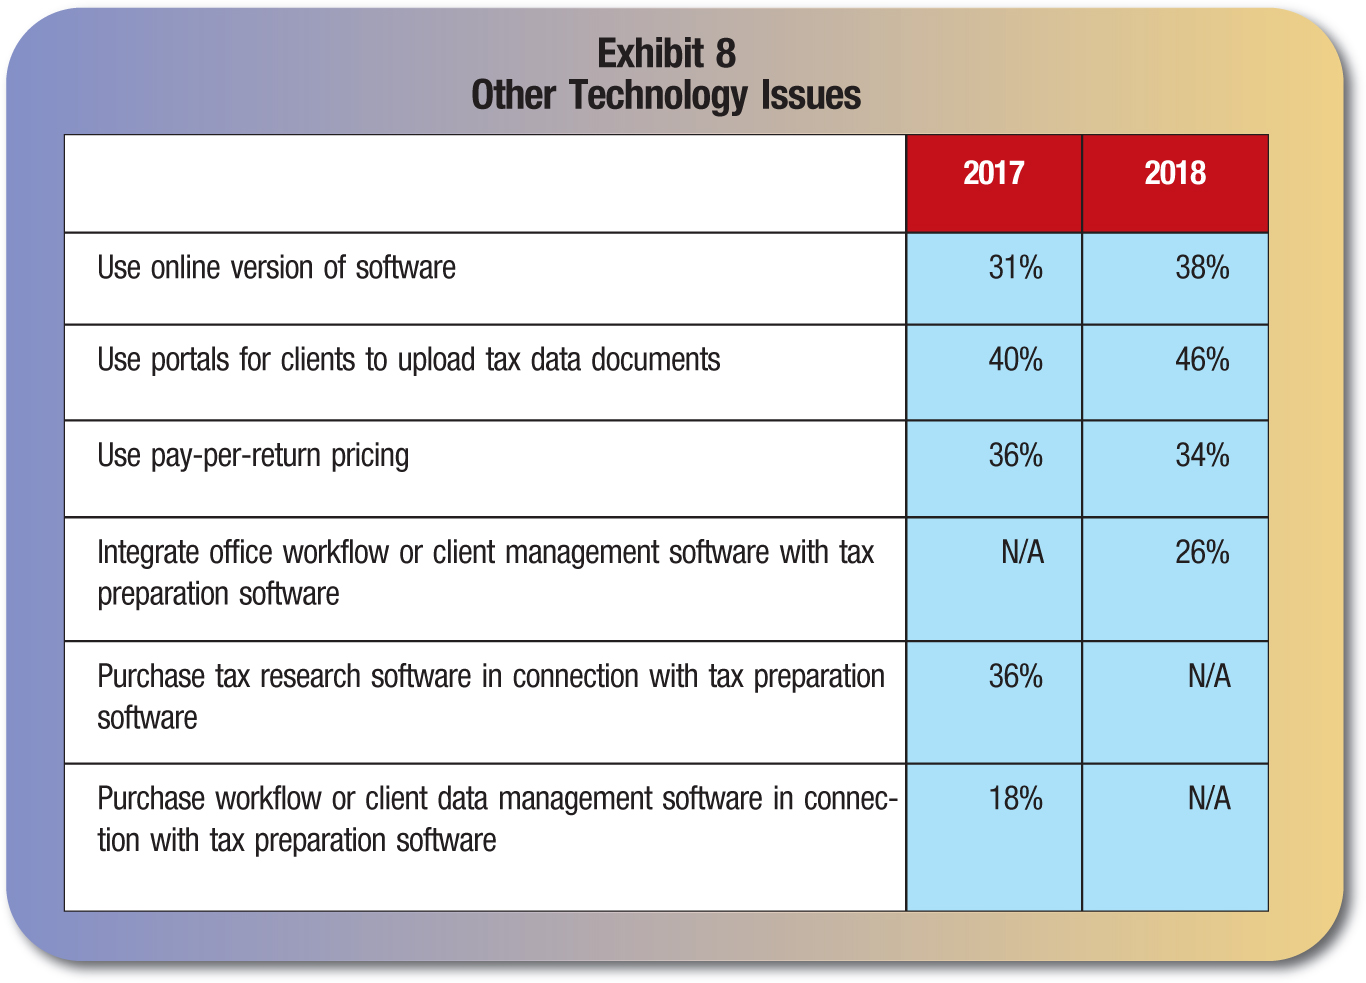 2017; 2018 Use online version of software; 31%; 38% Use portals for clients to upload tax data documents; 40%; 46% Use pay-per-return pricing; 36%; 34% Integrate office workflow or client management software with tax preparation software; N/A; 26% Purchase tax research software in connection with tax preparation software; 36%; N/A Purchase workflow or client data management software in connection with tax preparation software; 18%; N/A